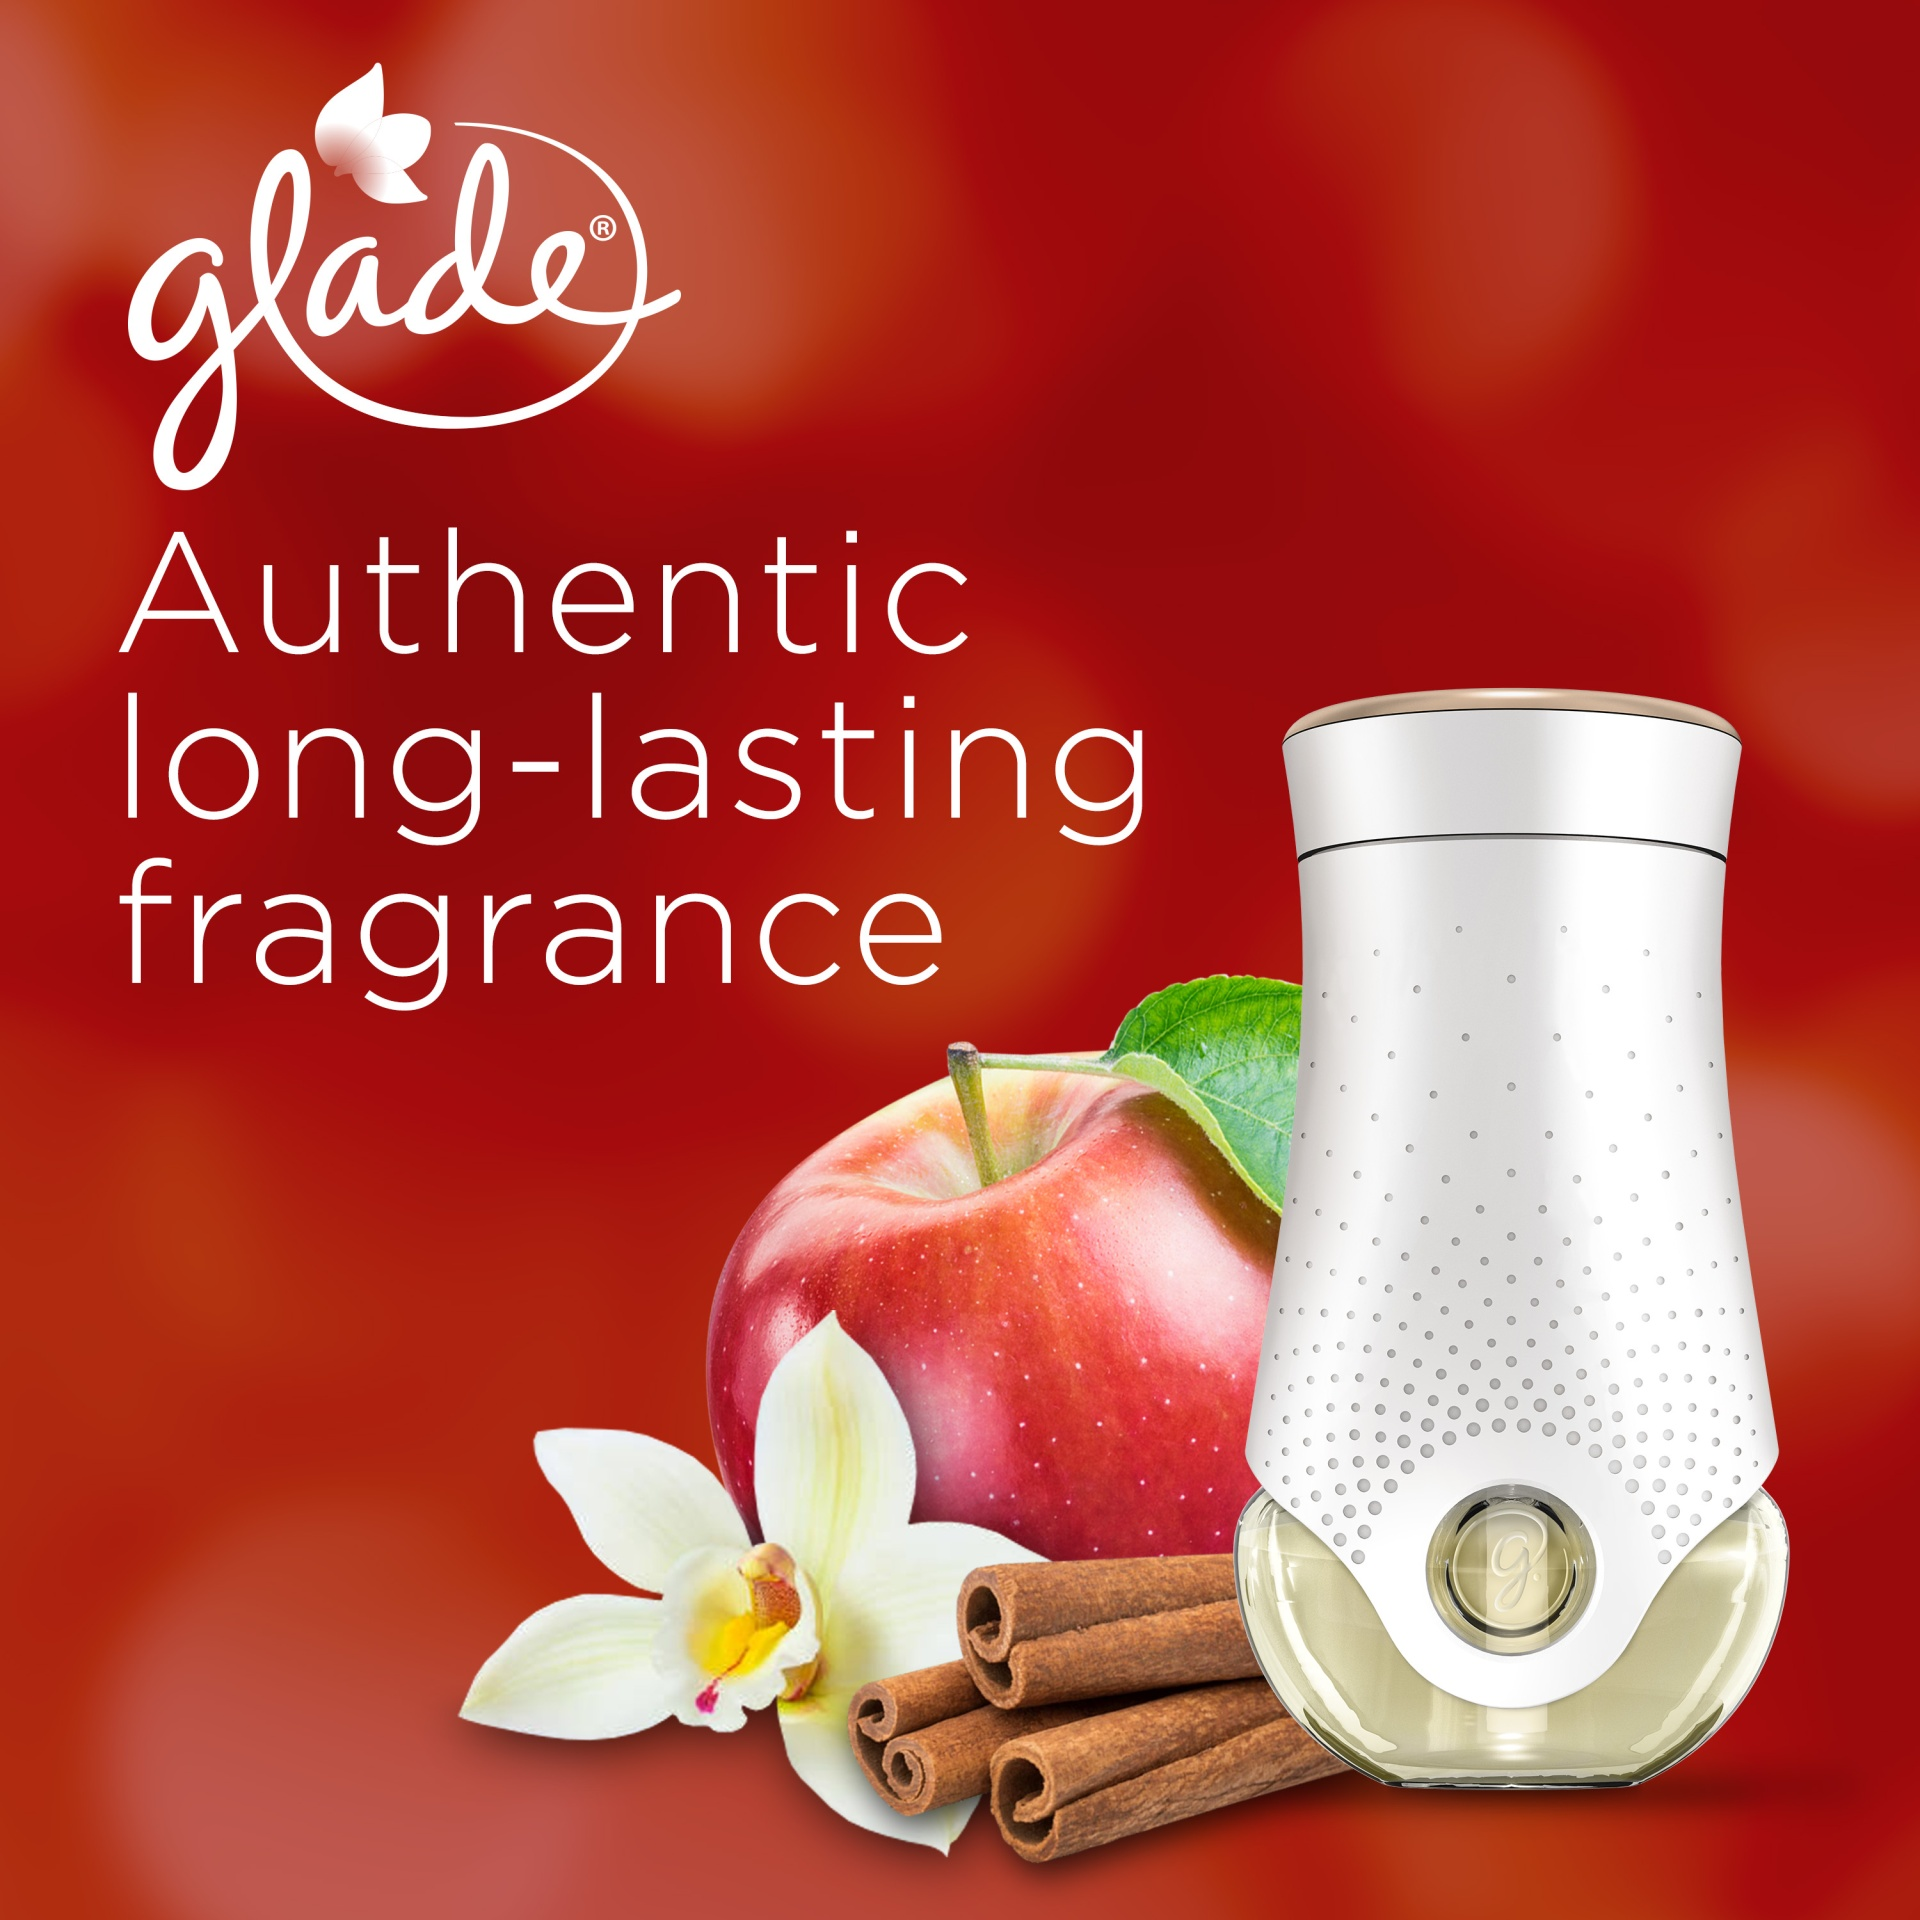 slide 3 of 7, Glade Plugins Scented Oil Apple Cinnamon Air Freshener Refill,